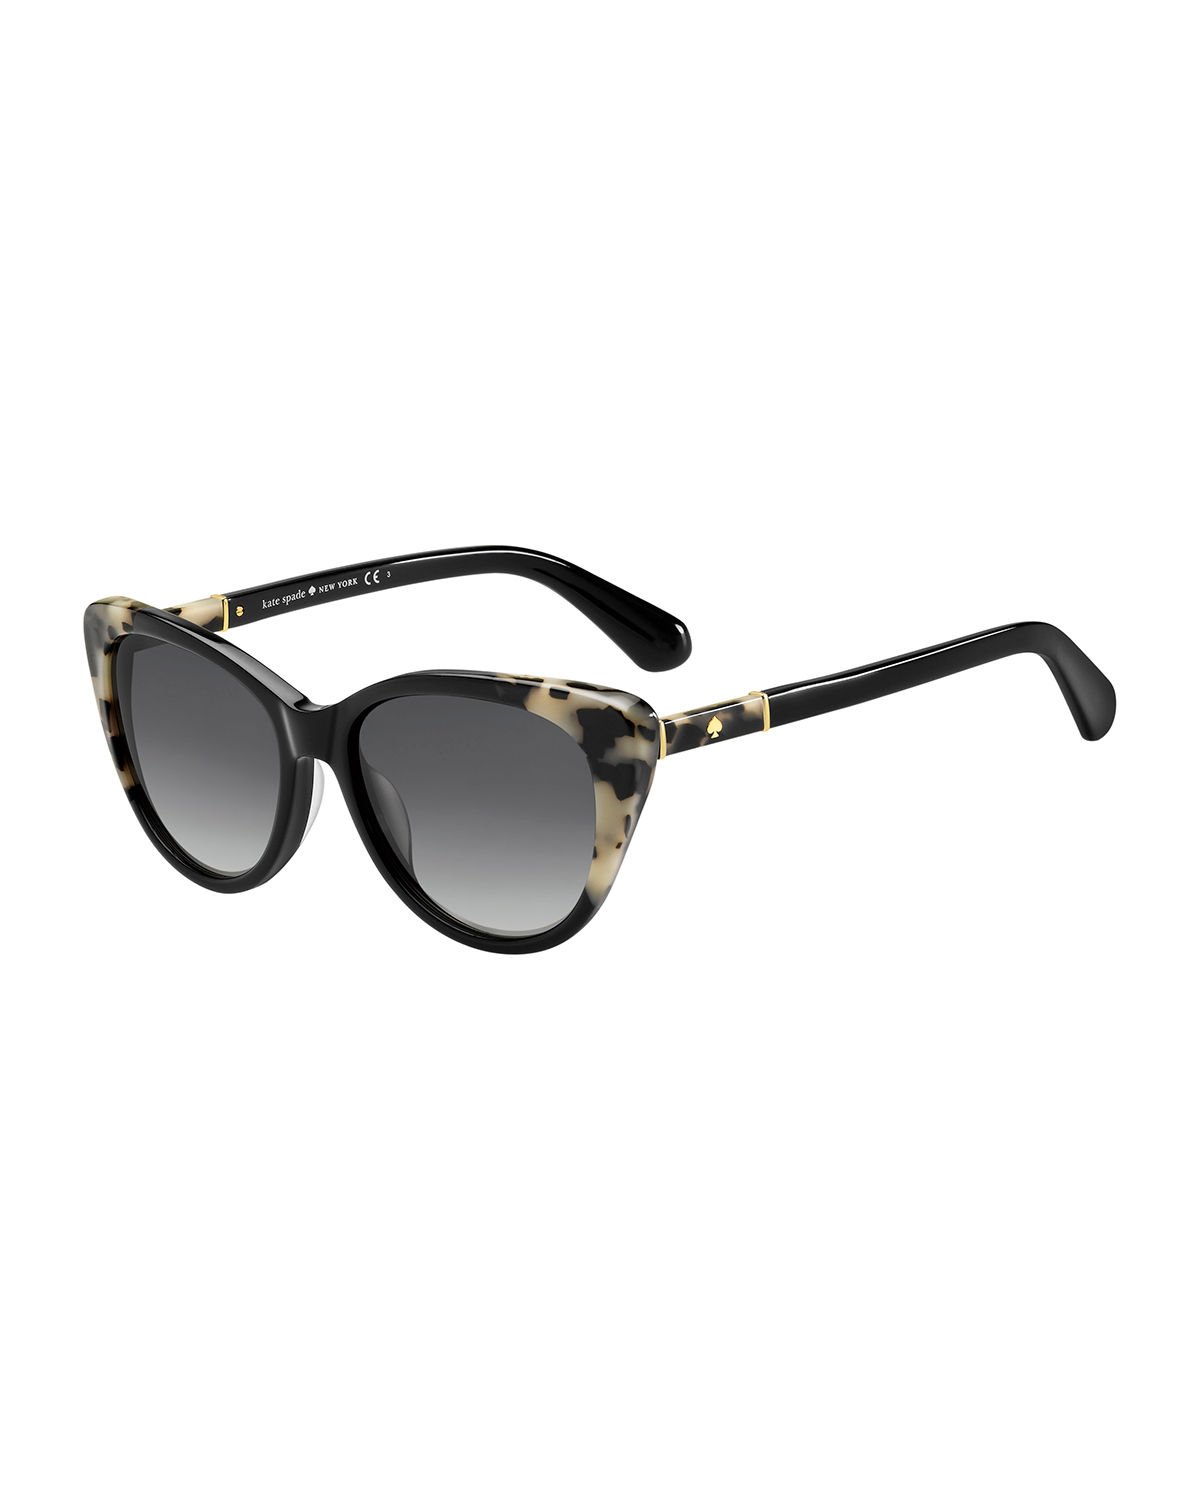 8a9e47e87e kate spade new york sherylyn two-tone cat-eye sunglasses